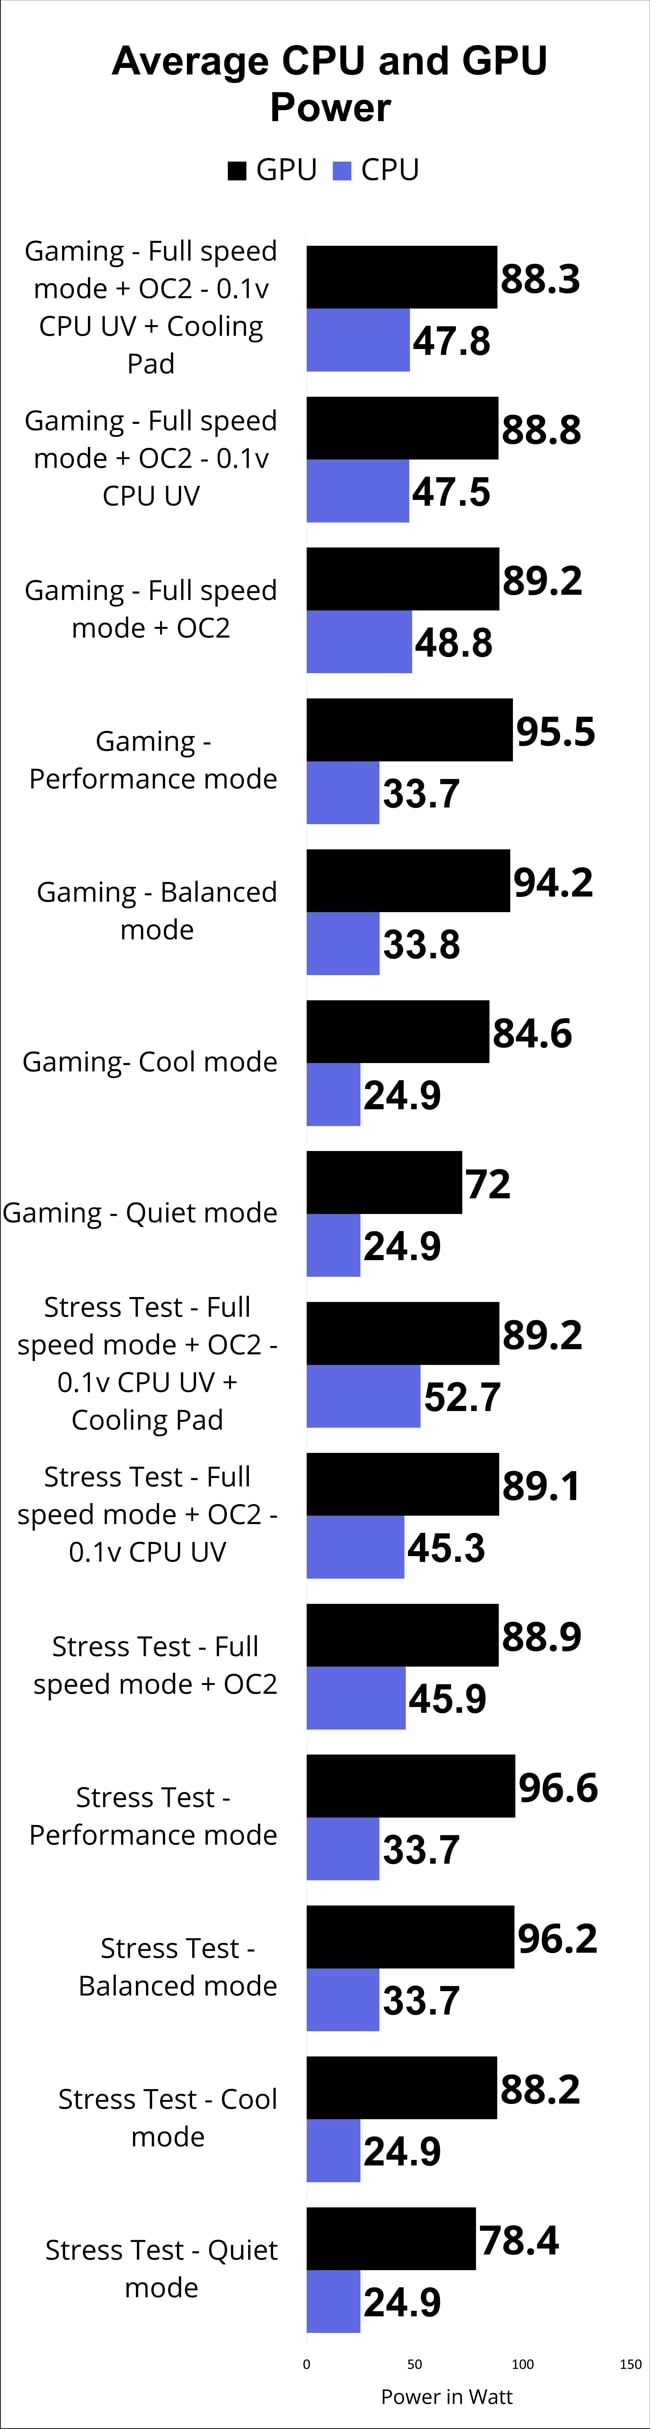 The chart of the average CPU and GPU power limit measured through gaming and stress tests in different performance modes.